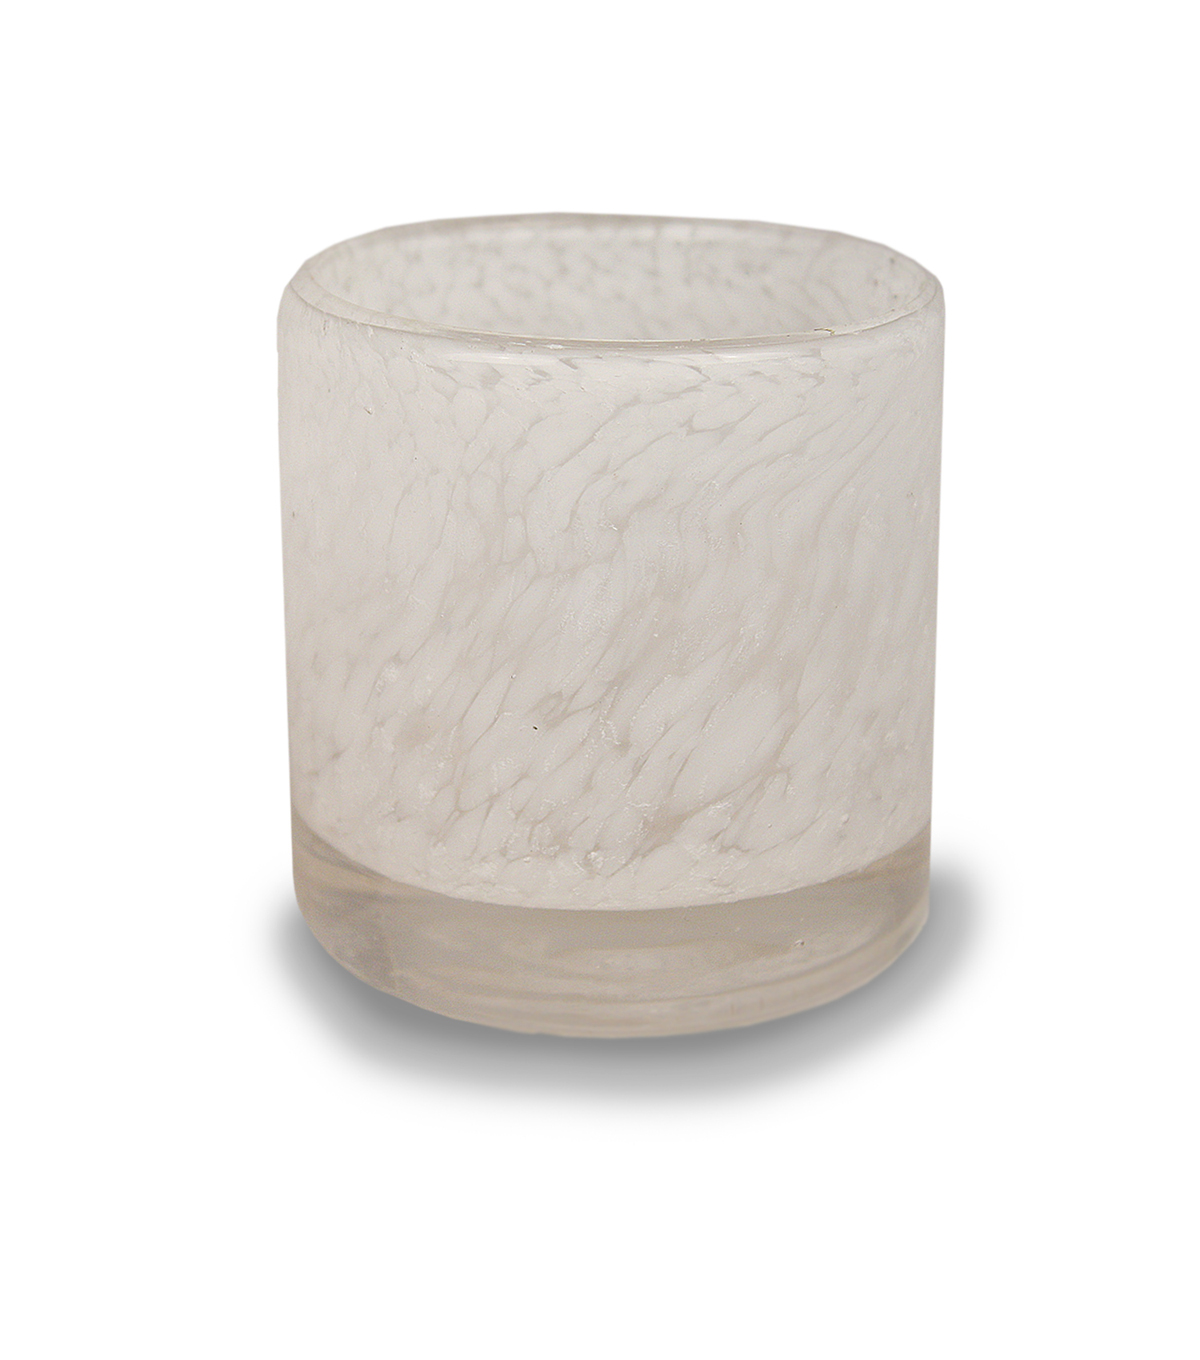 Hudson 43 Candle & Light Collection White Sea Glass Medium Tealight Holder